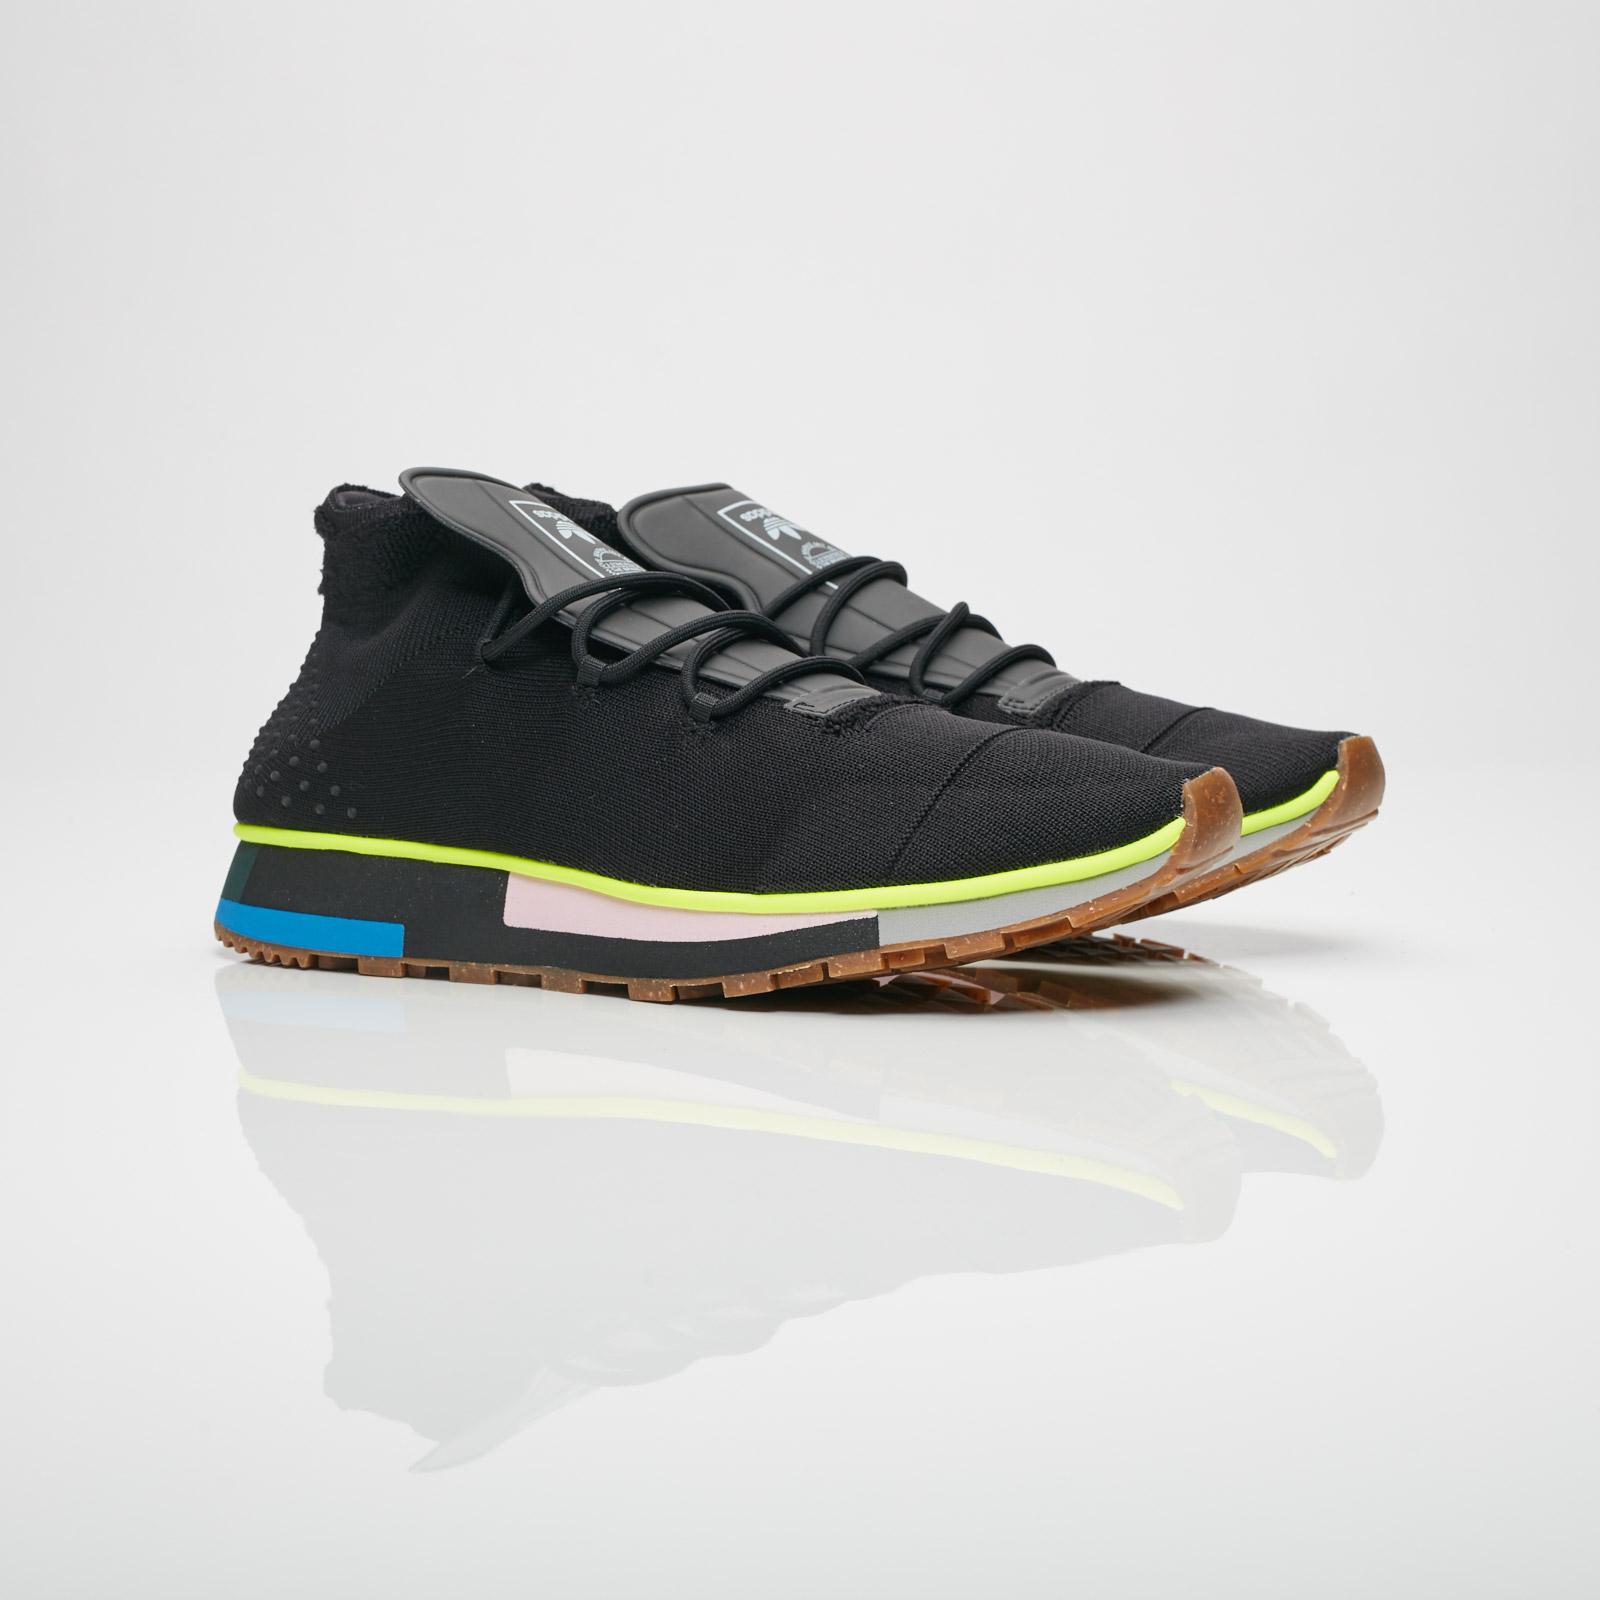 sale retailer 0a0d3 6773c adidas Originals by Alexander Wang Running Shoes